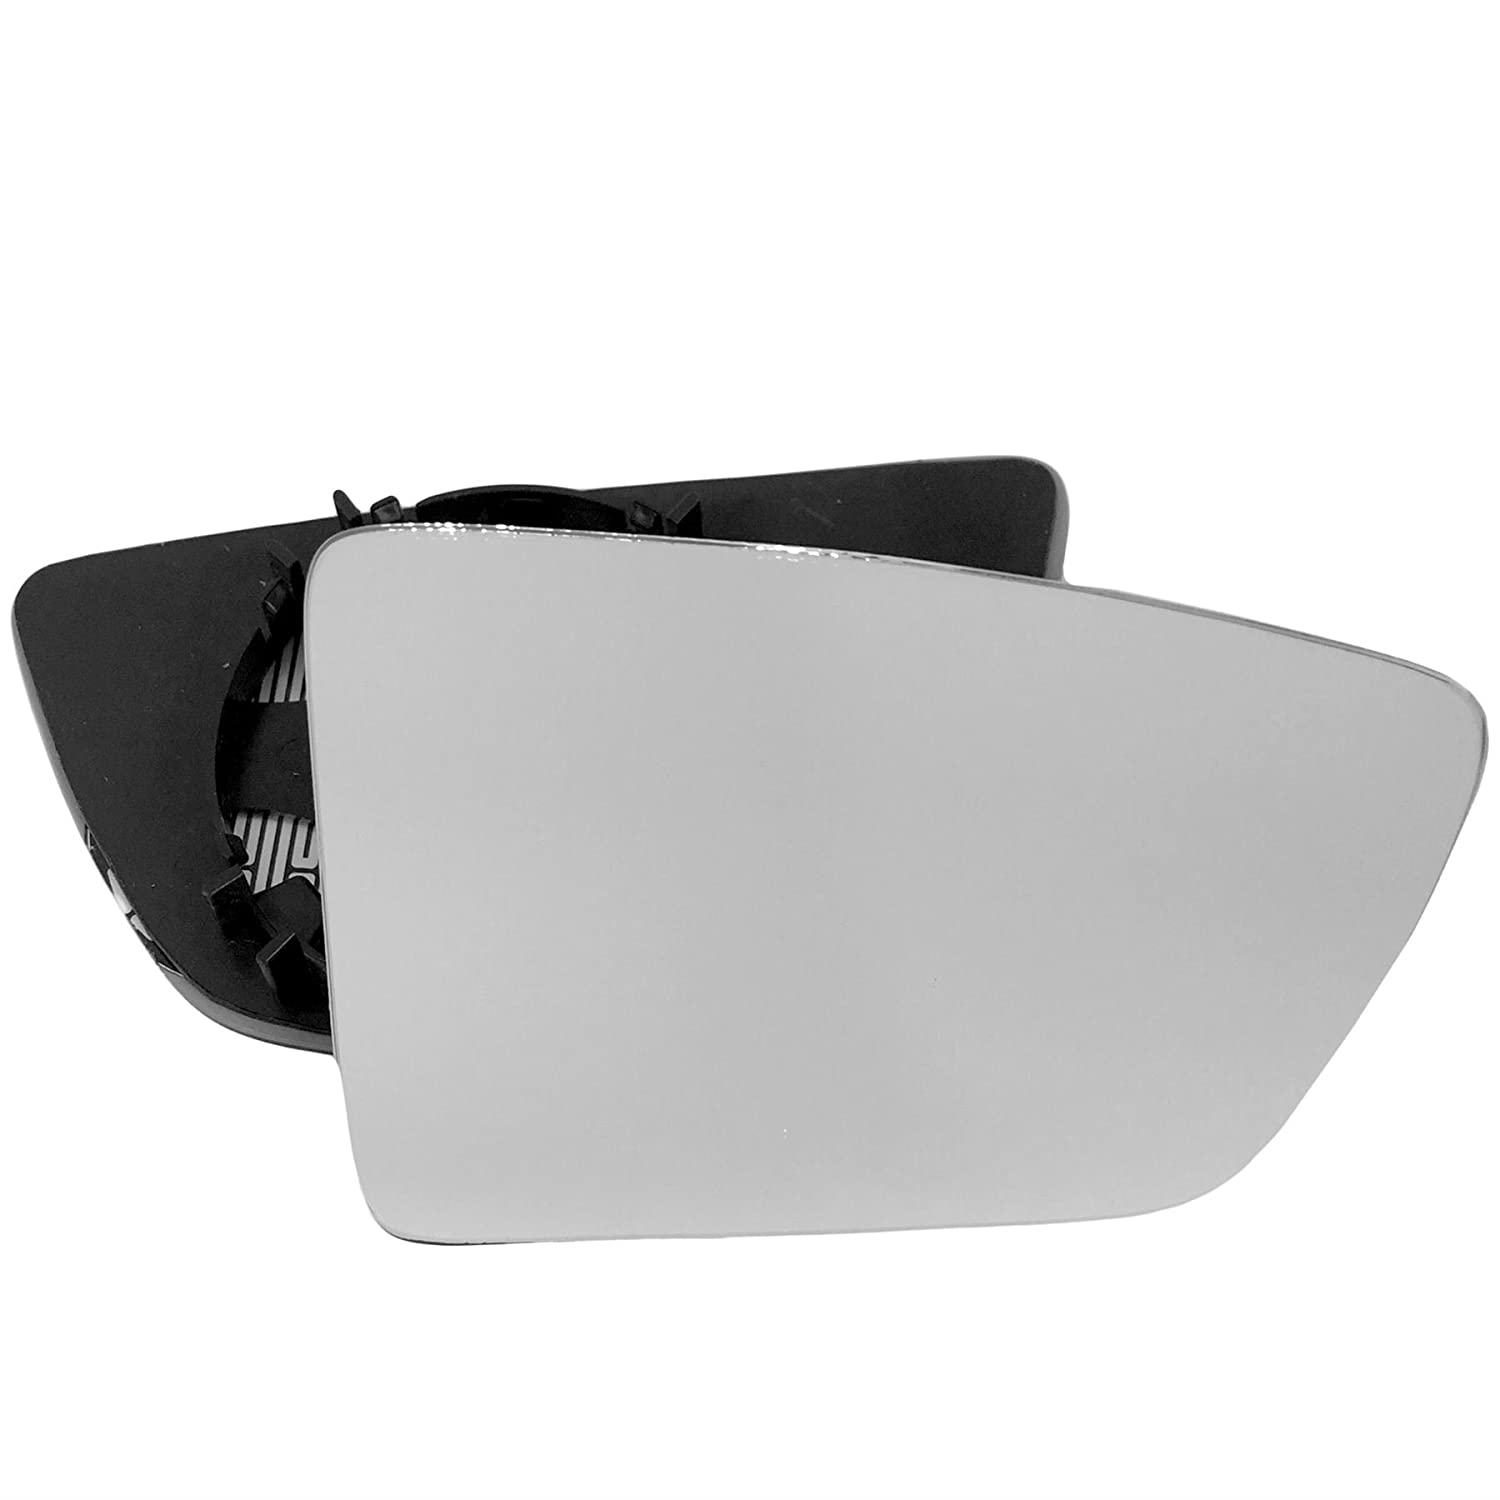 For Seat Leon 2013-2016 Driver right hand side wing door mirror convex glass heated with backing plate